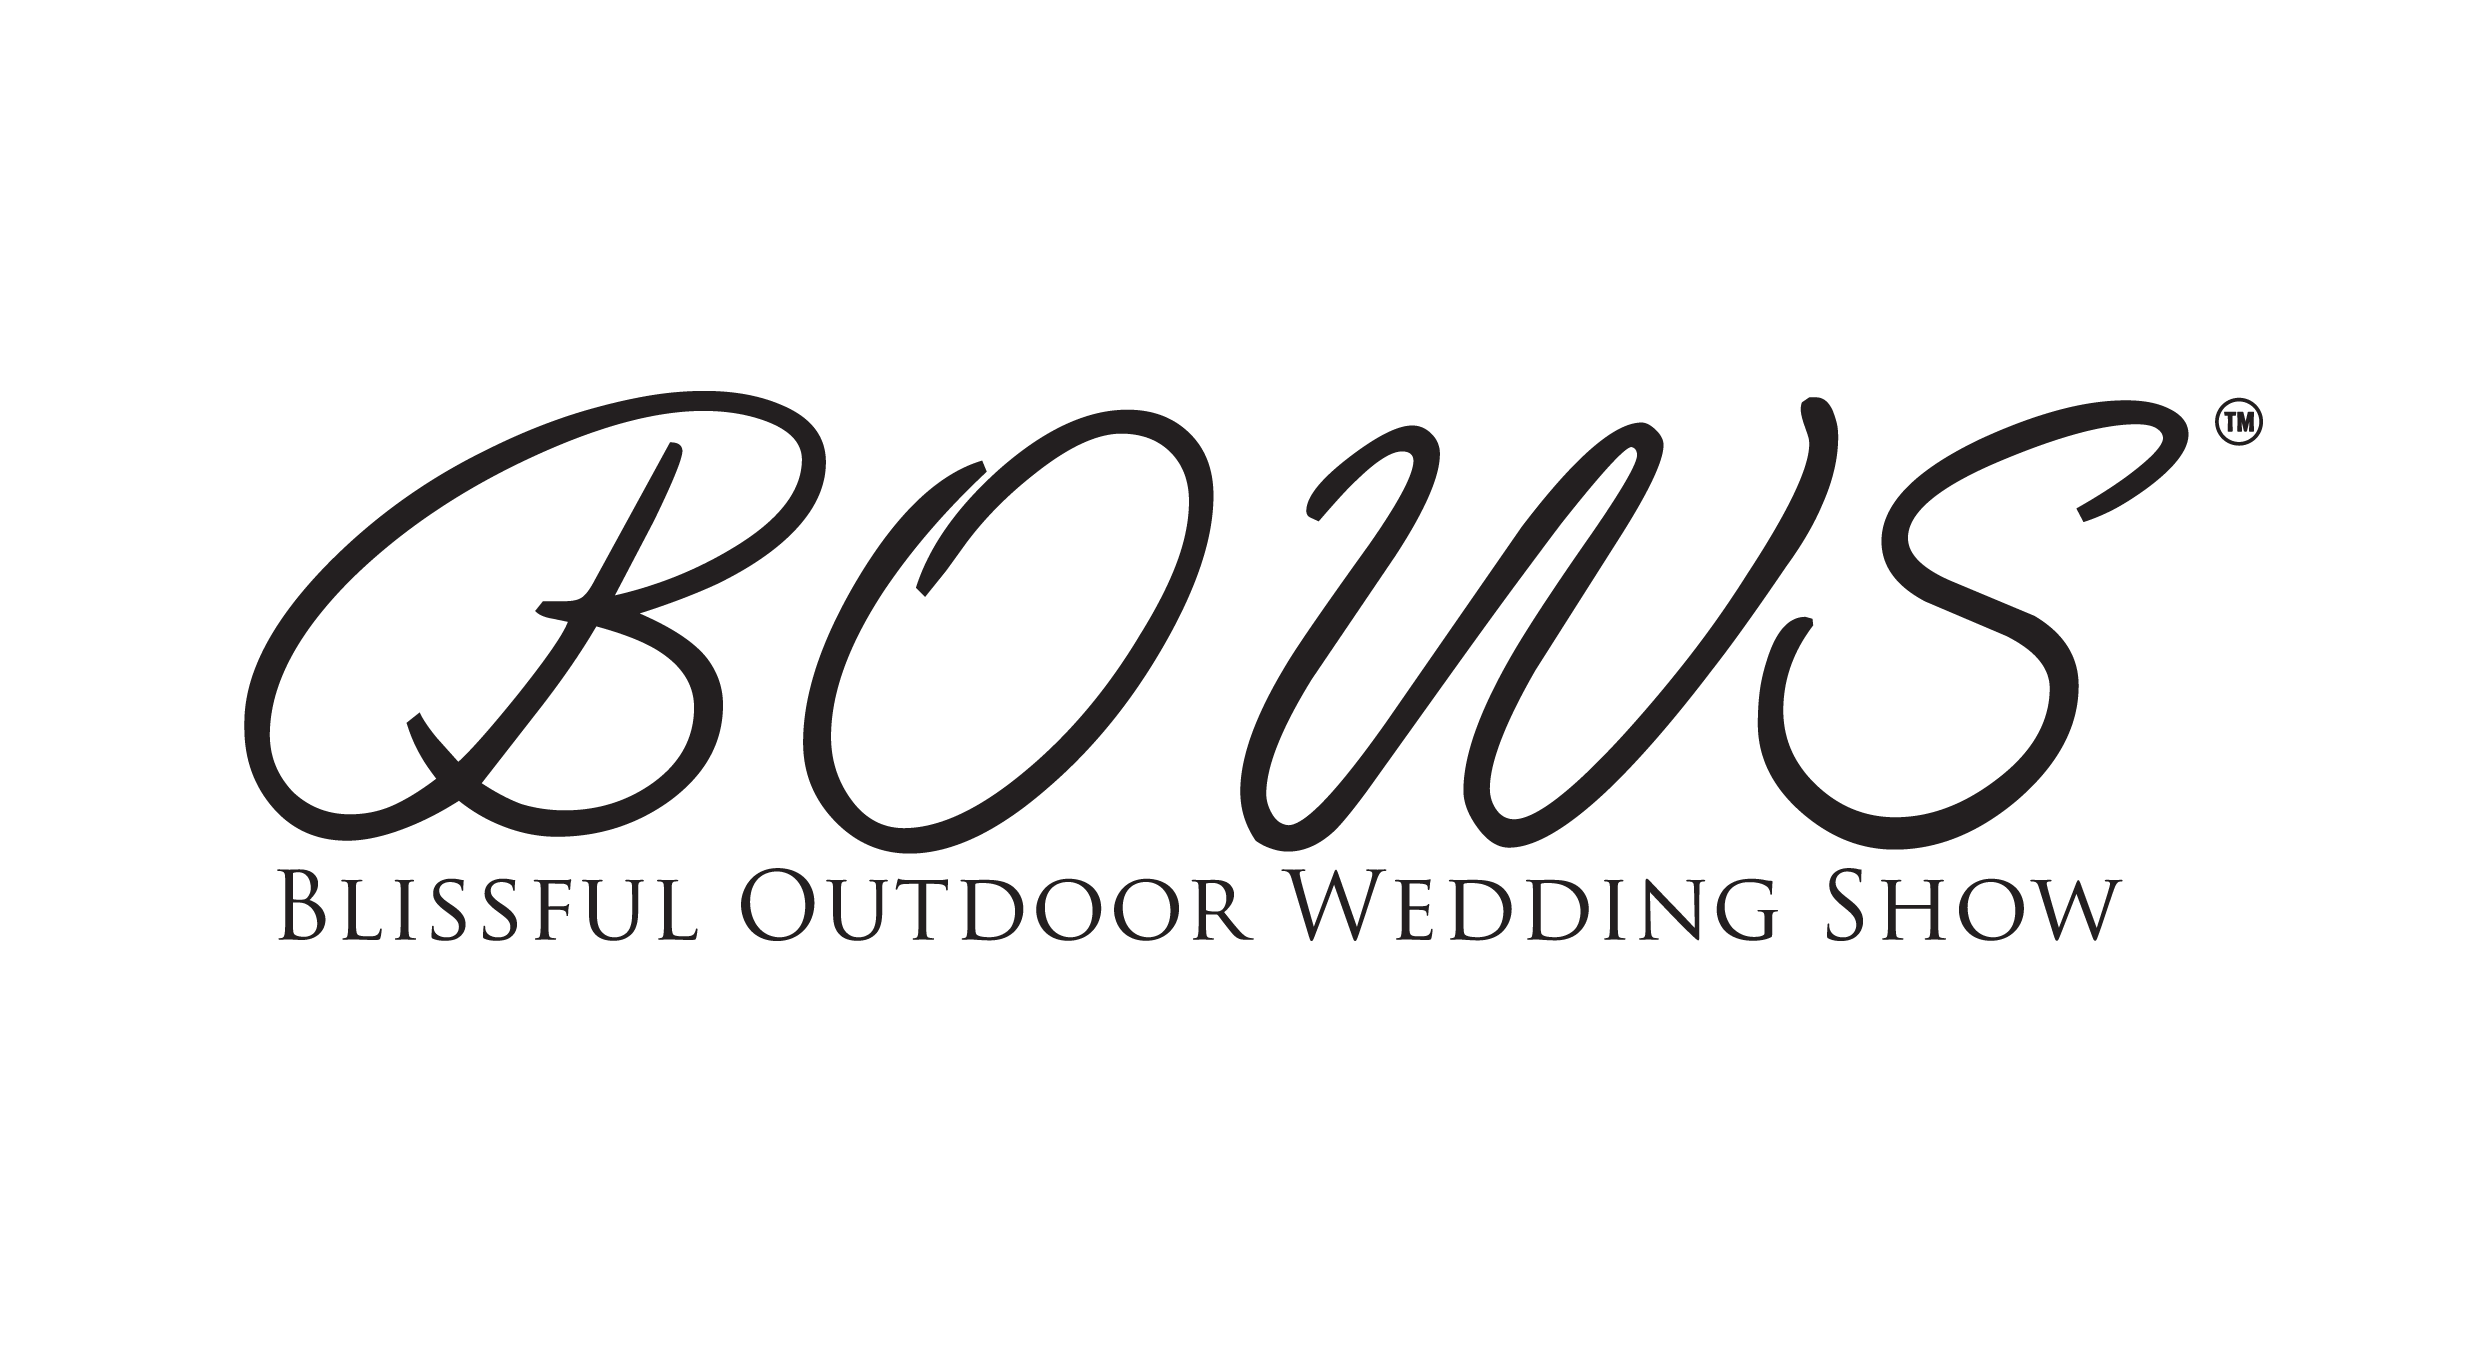 bows logo transparent.png